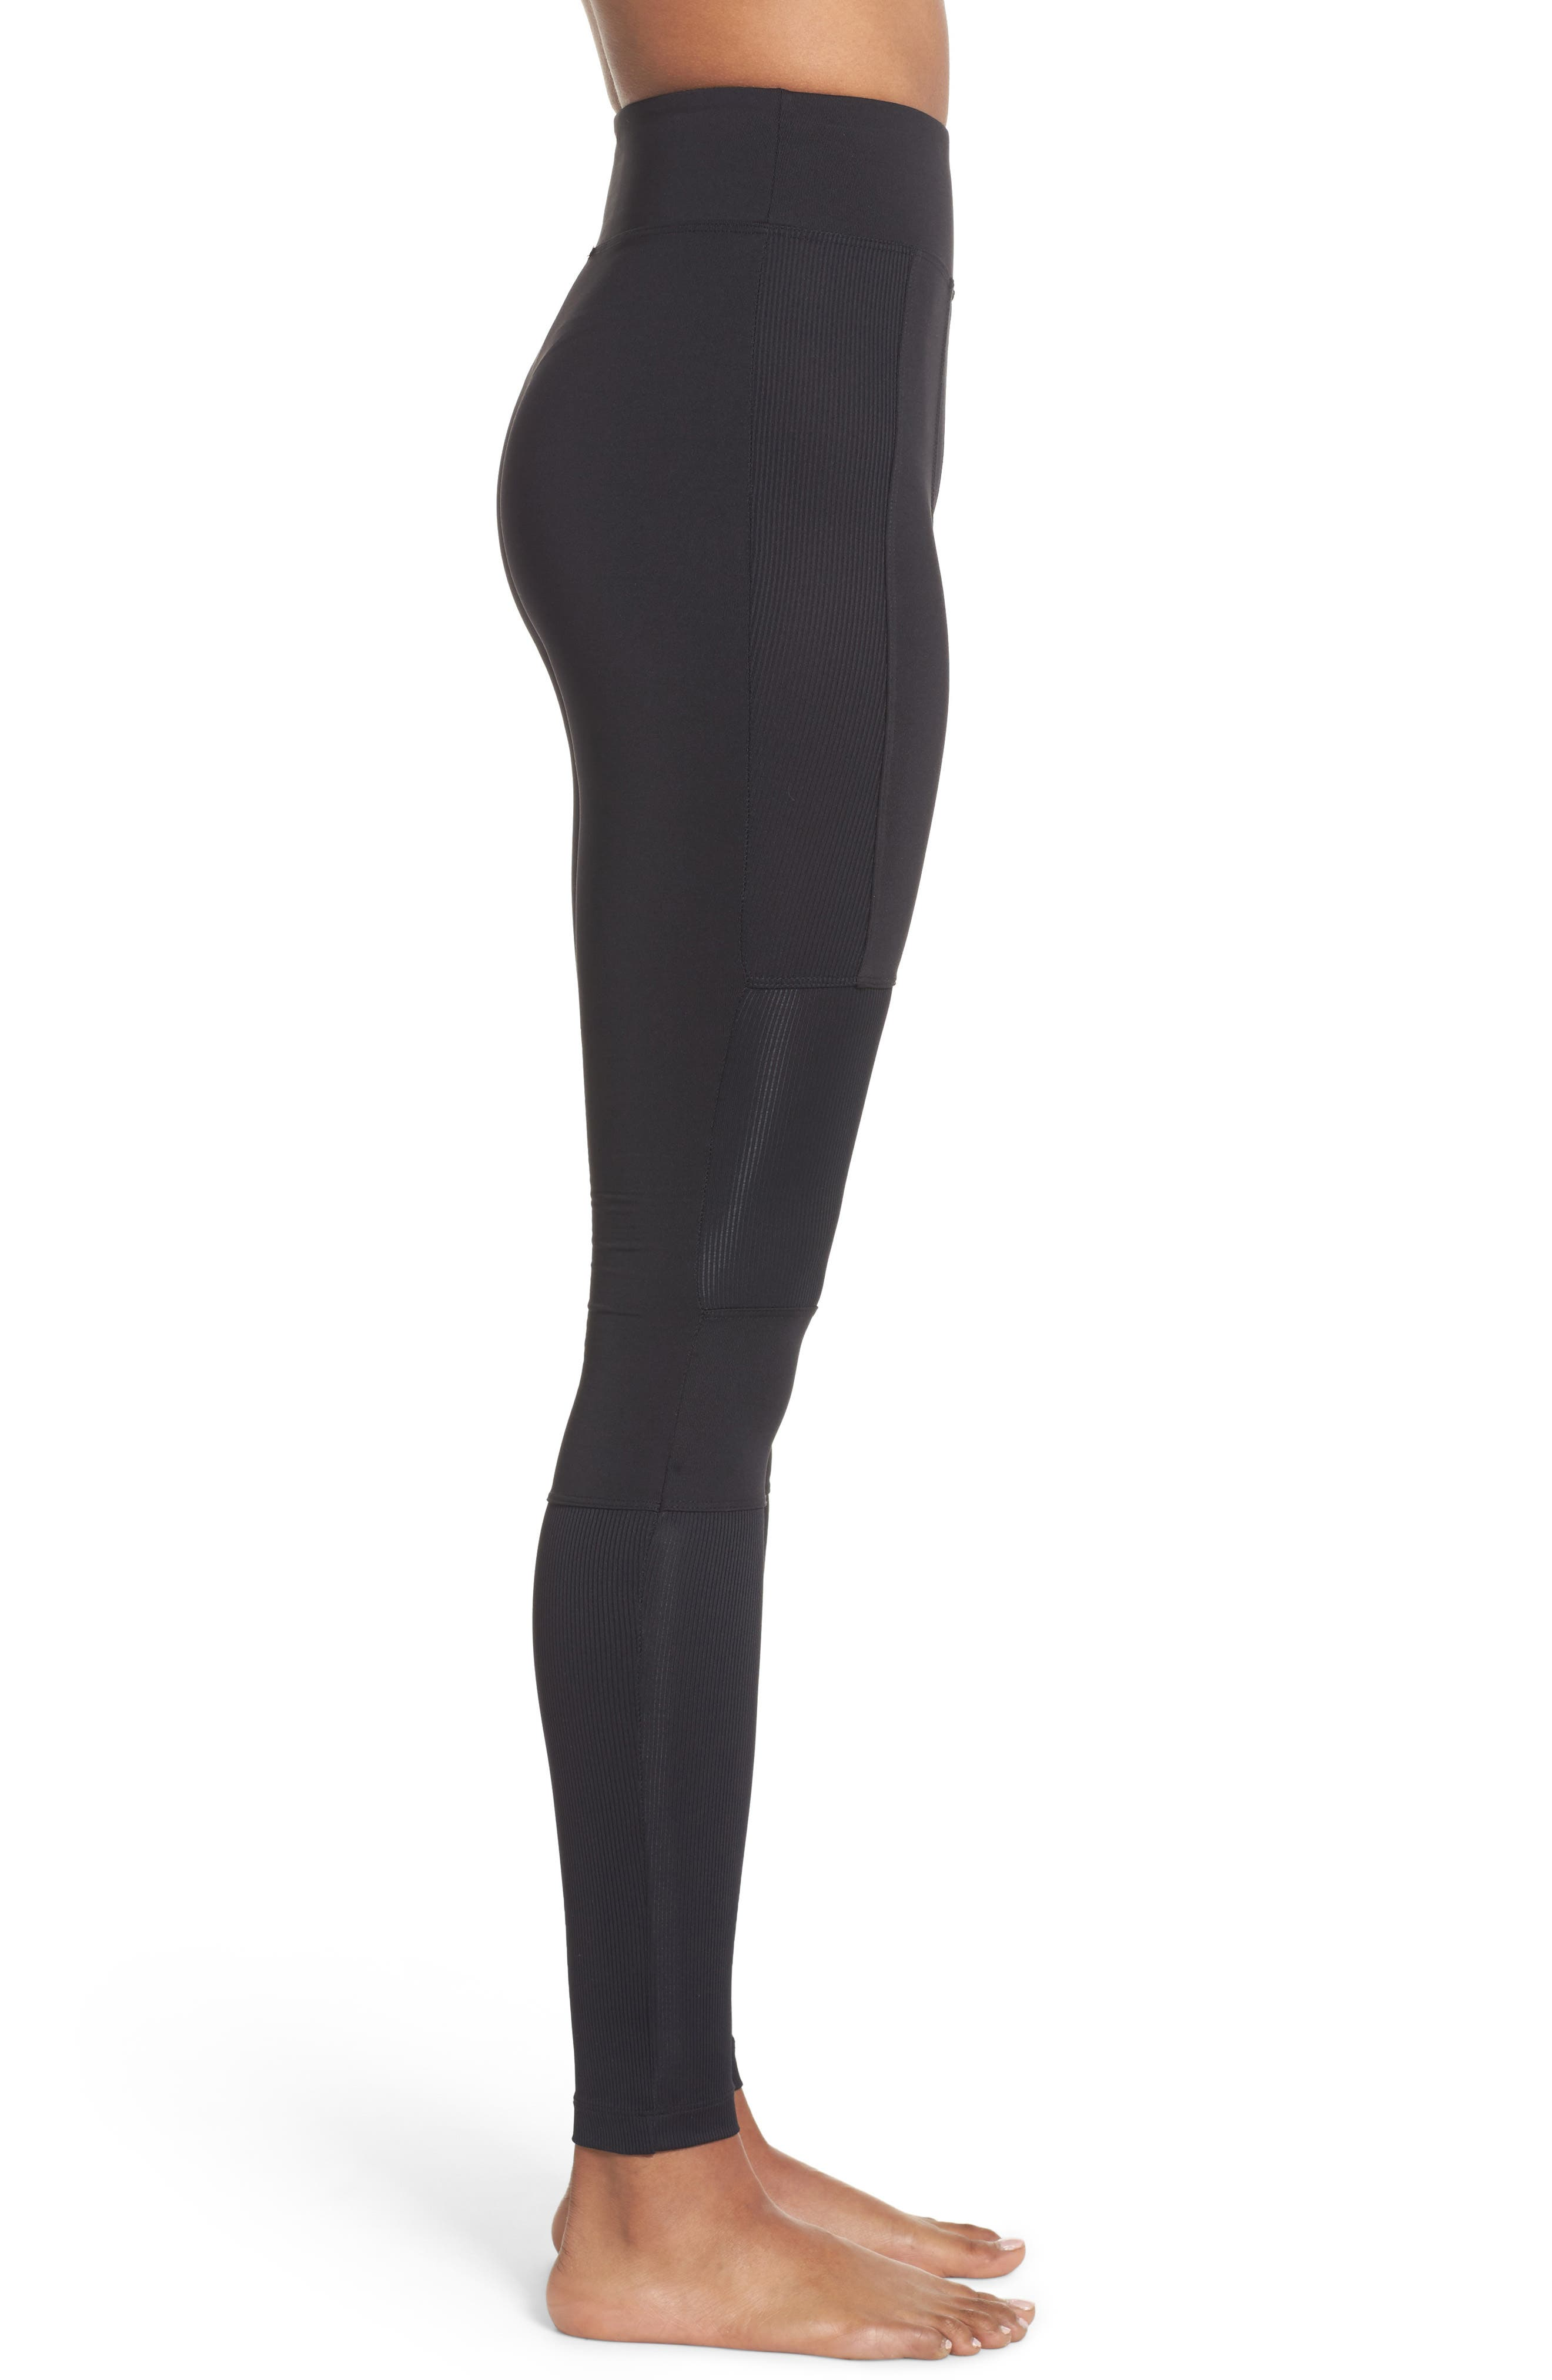 Rappel High Waist Leggings,                             Alternate thumbnail 3, color,                             001